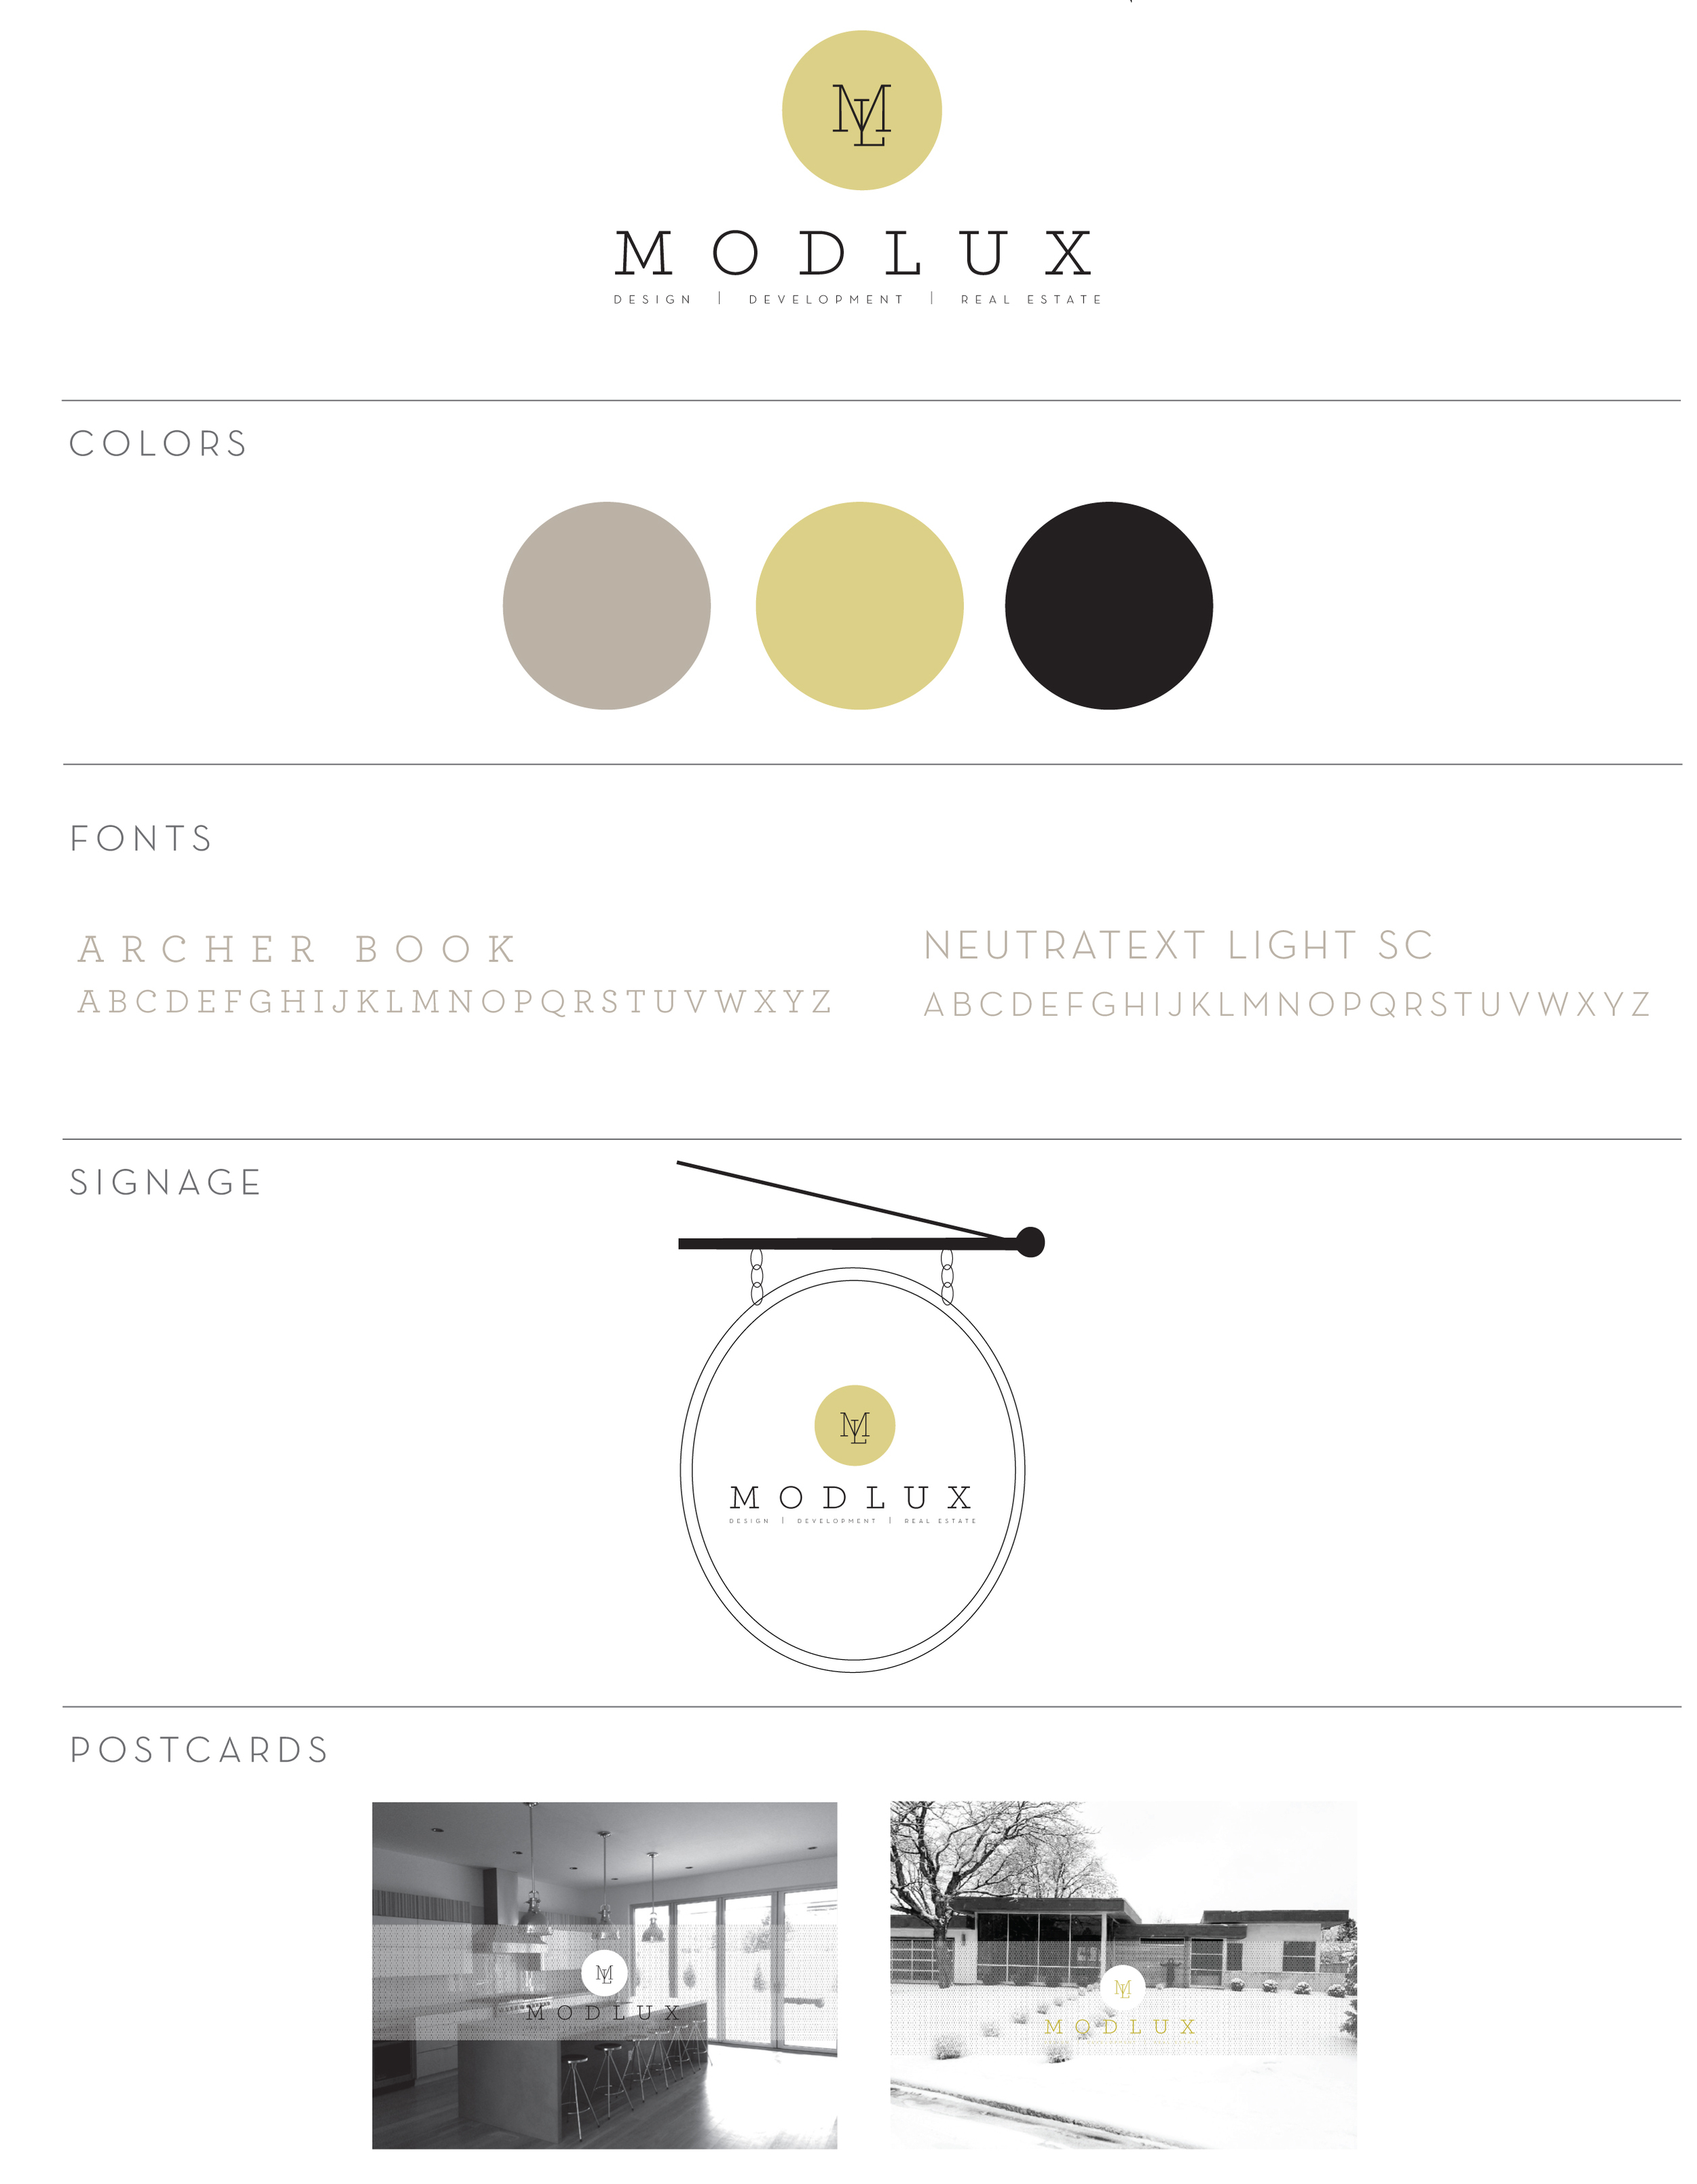 modlux brand board look 1-1